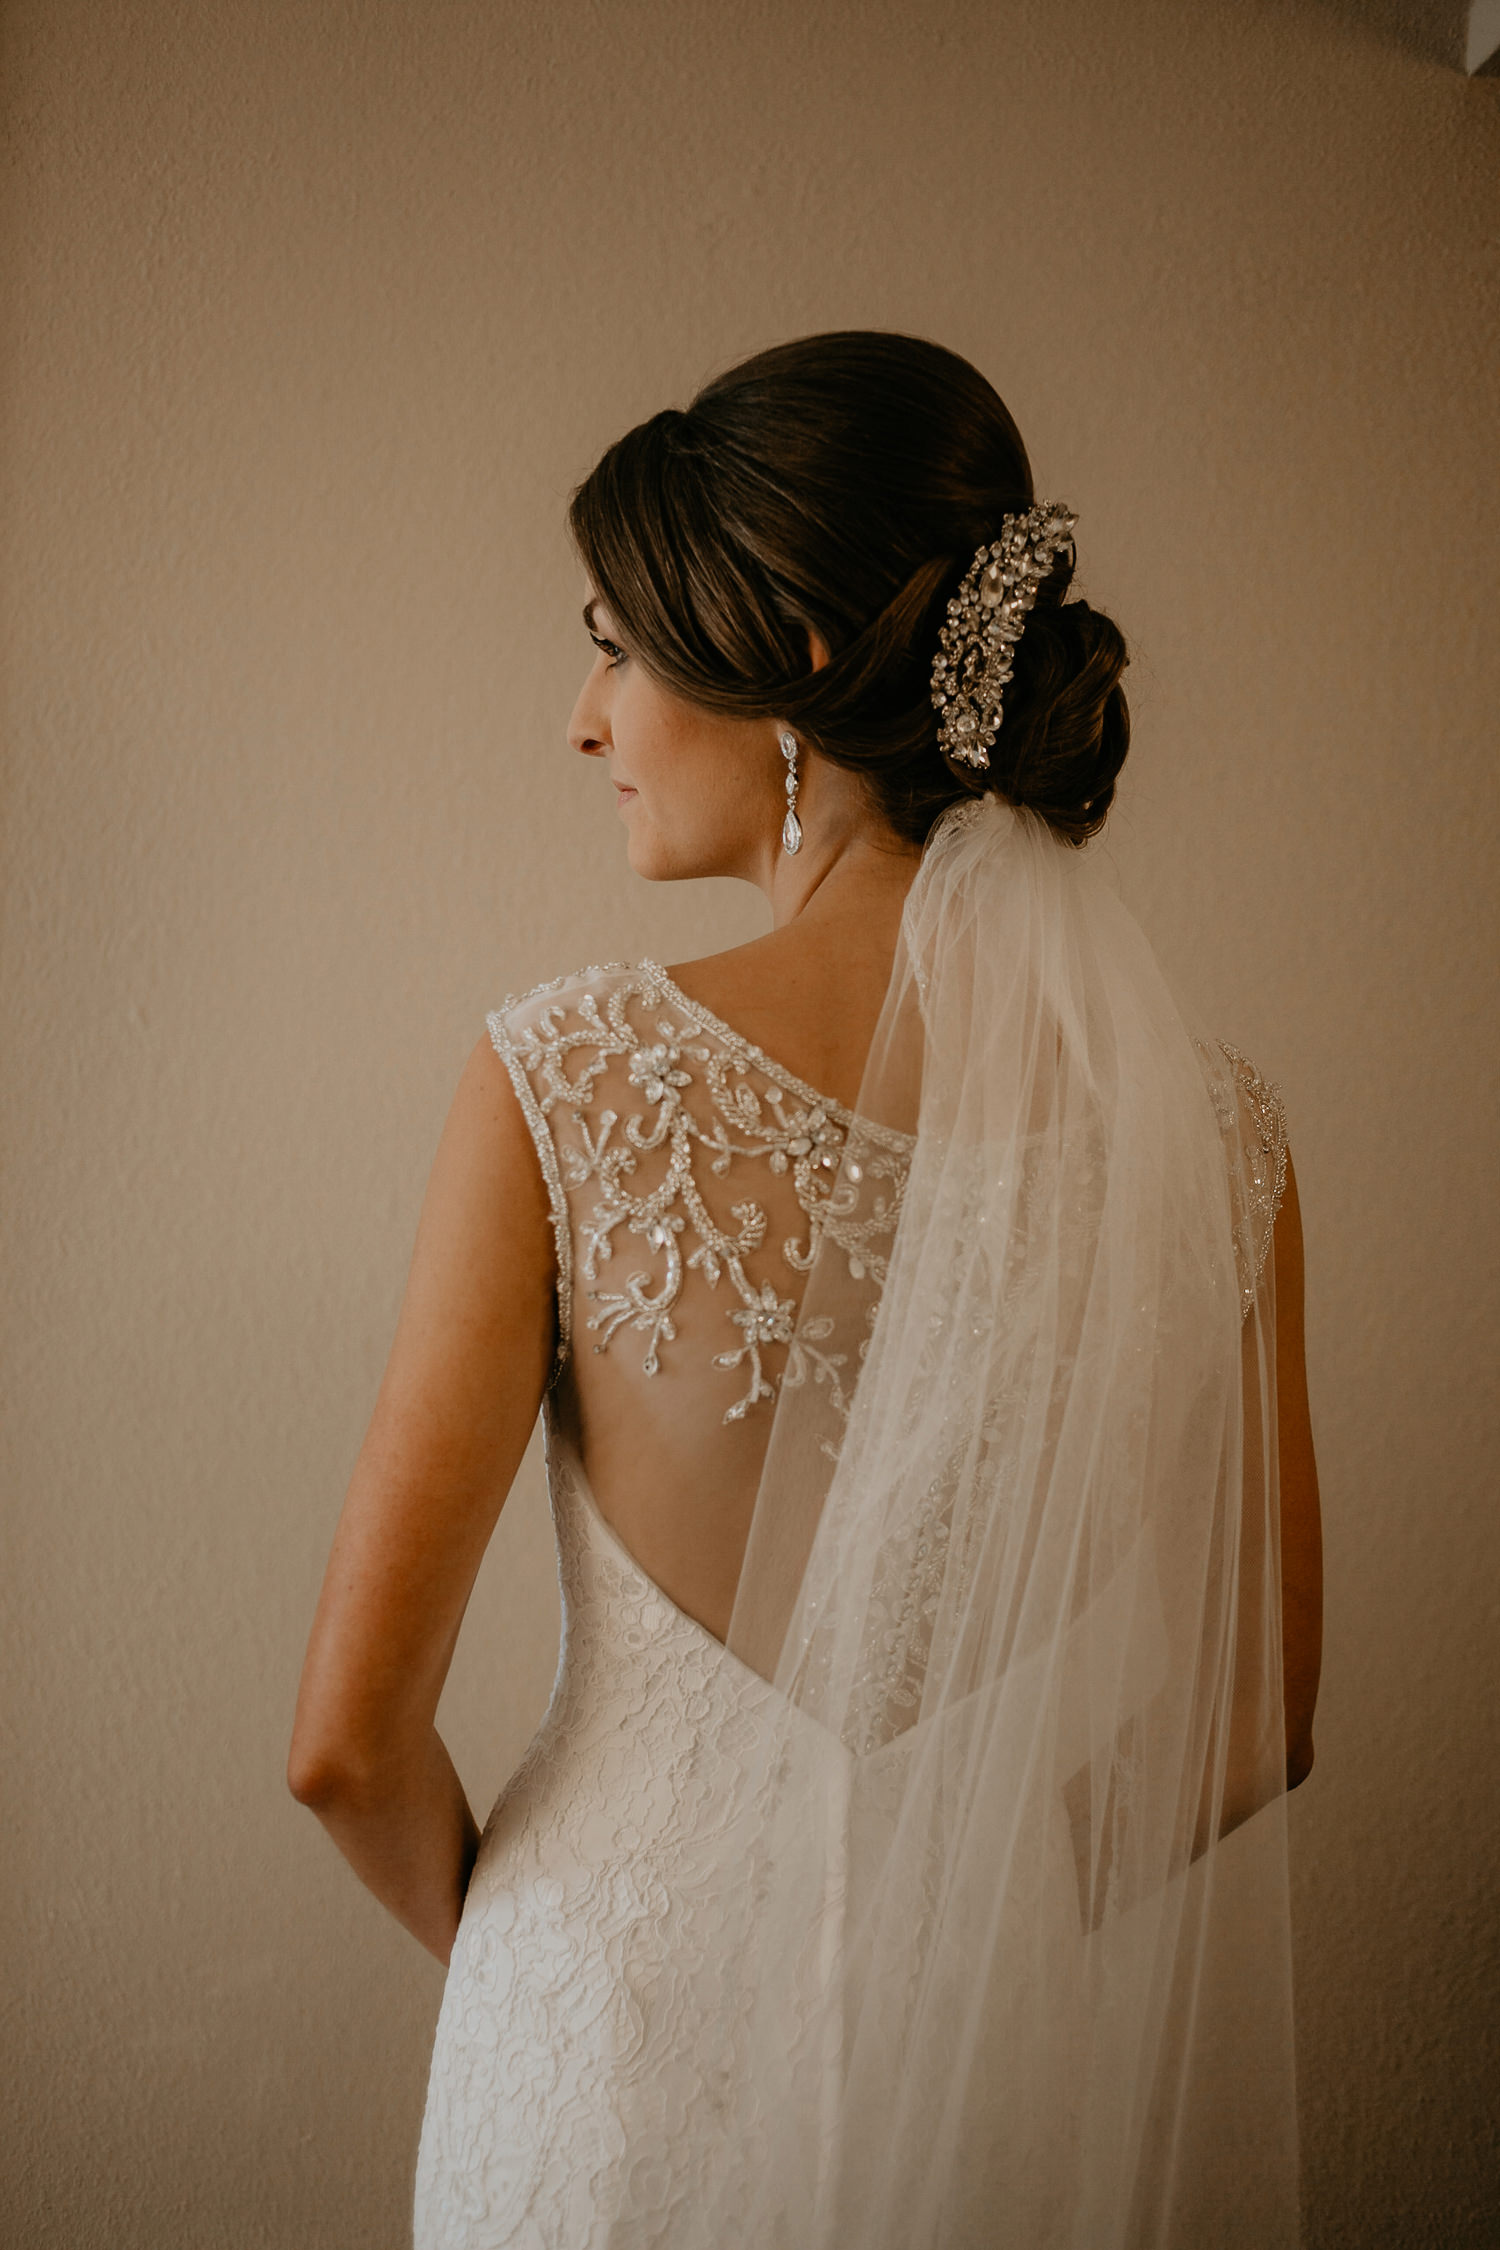 closeup of the bride's back of her dress as she looks sideways